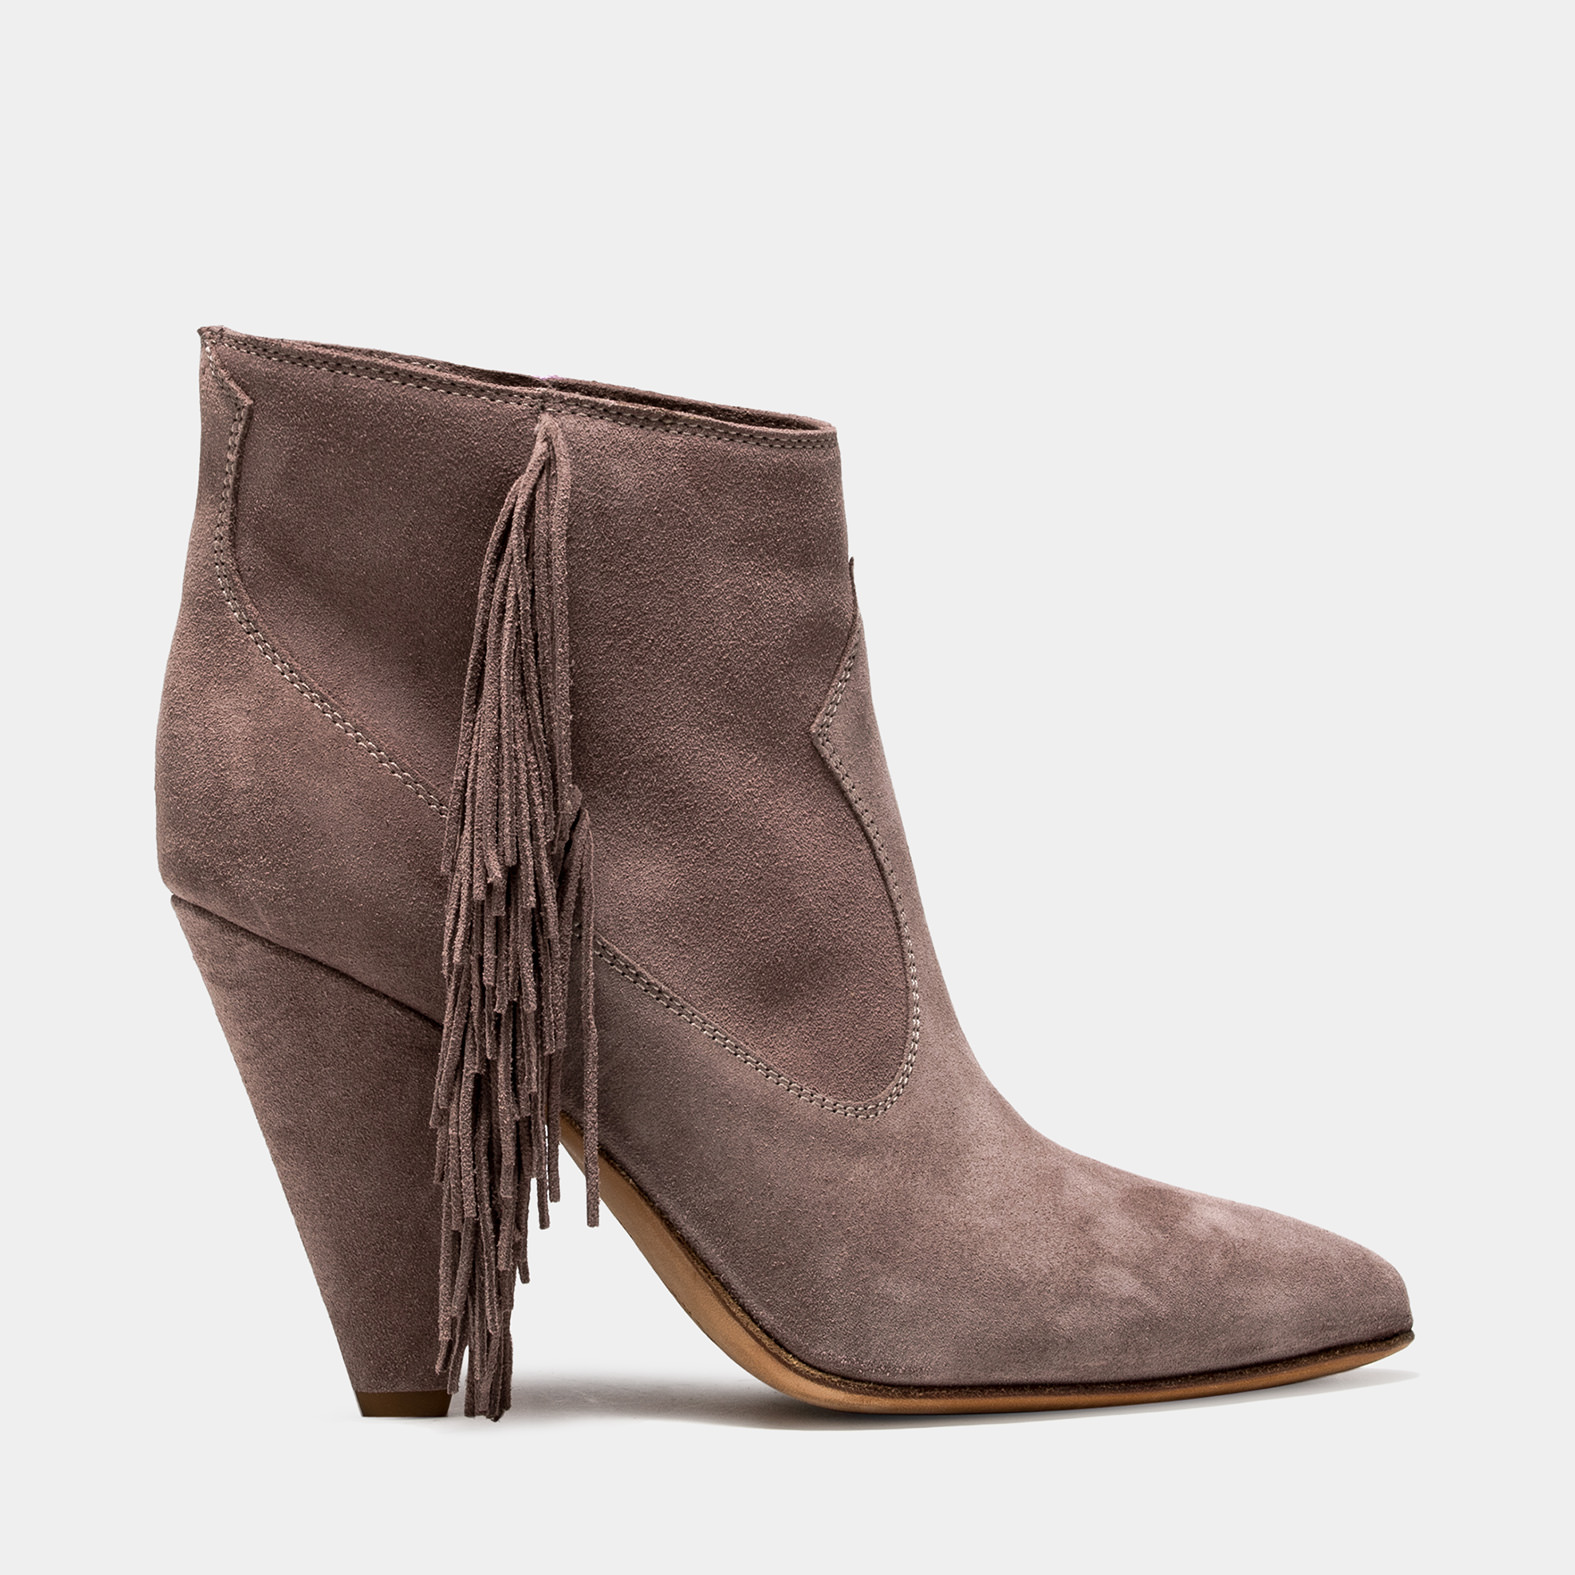 BUTTERO: SPHINX GREY SUEDE ROSE LOW TOP BOOTS